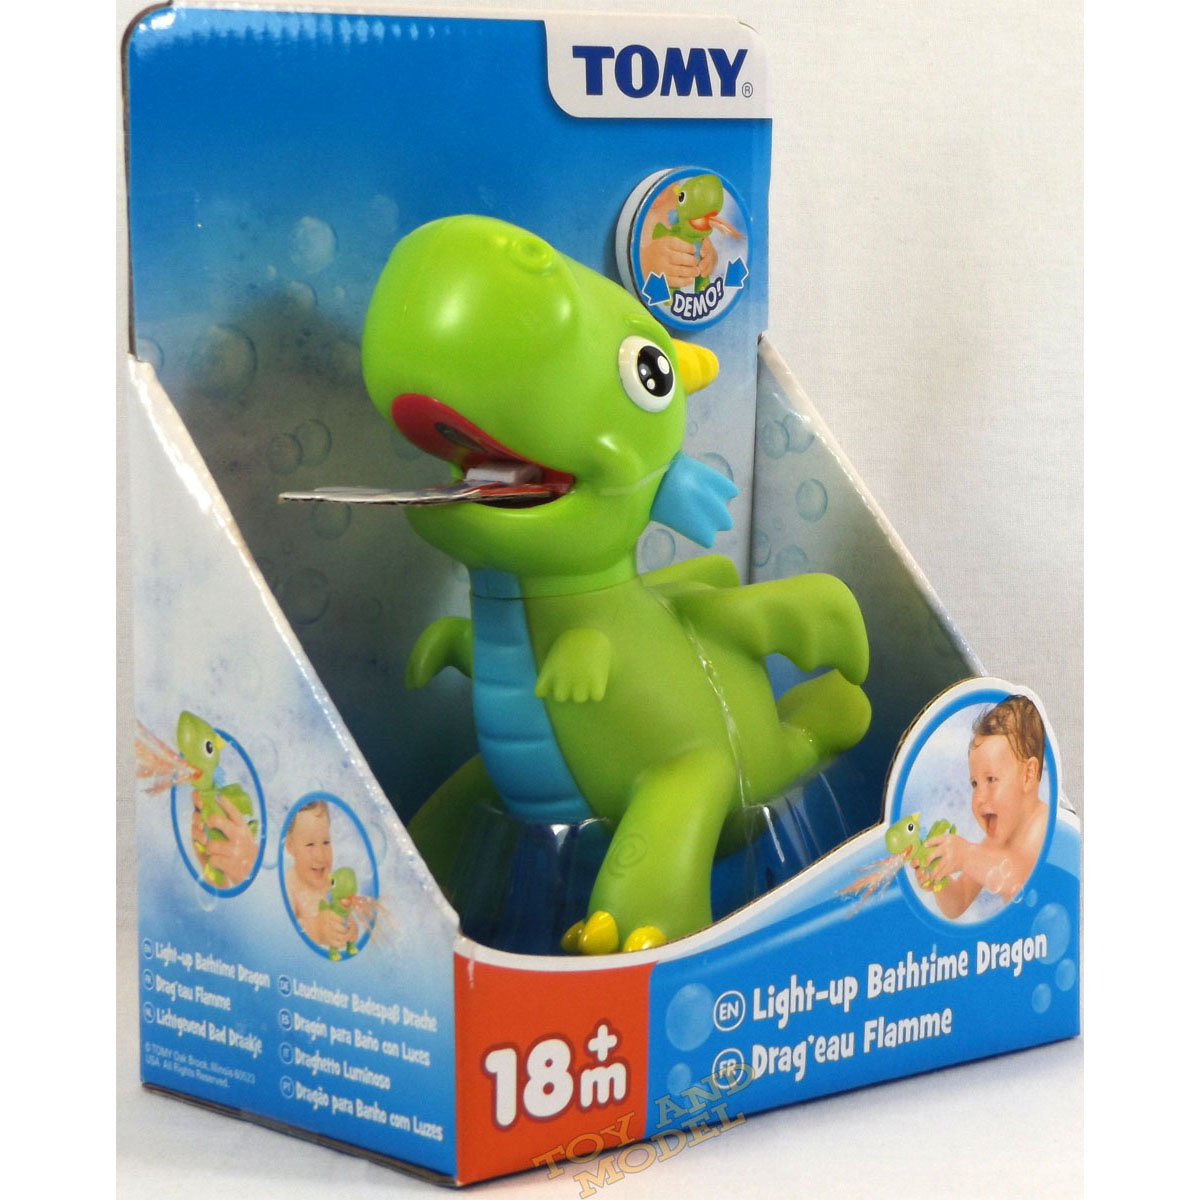 Tomy Bath Toys Light-Up Bathtime Dragon squeeze to squirt the light ...